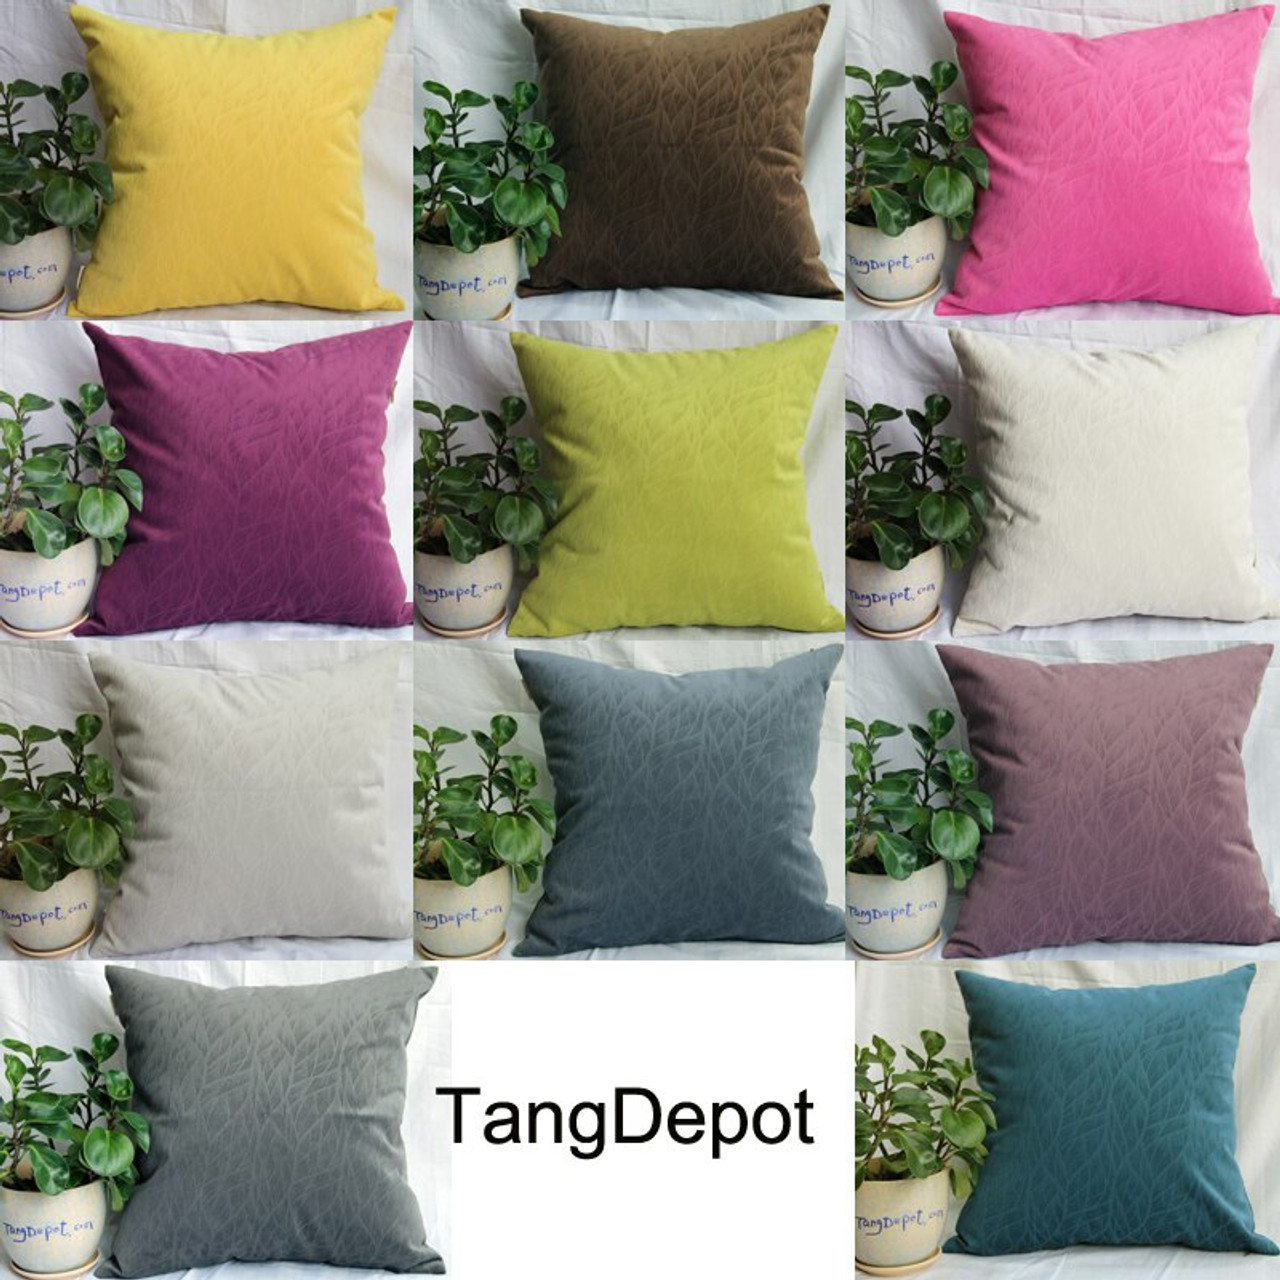 TangDepot Solid Velvet Decorative Pillow Covers/Euro Pillow shams, Super Soft Velour, Micro embossed Leaf texture and shape